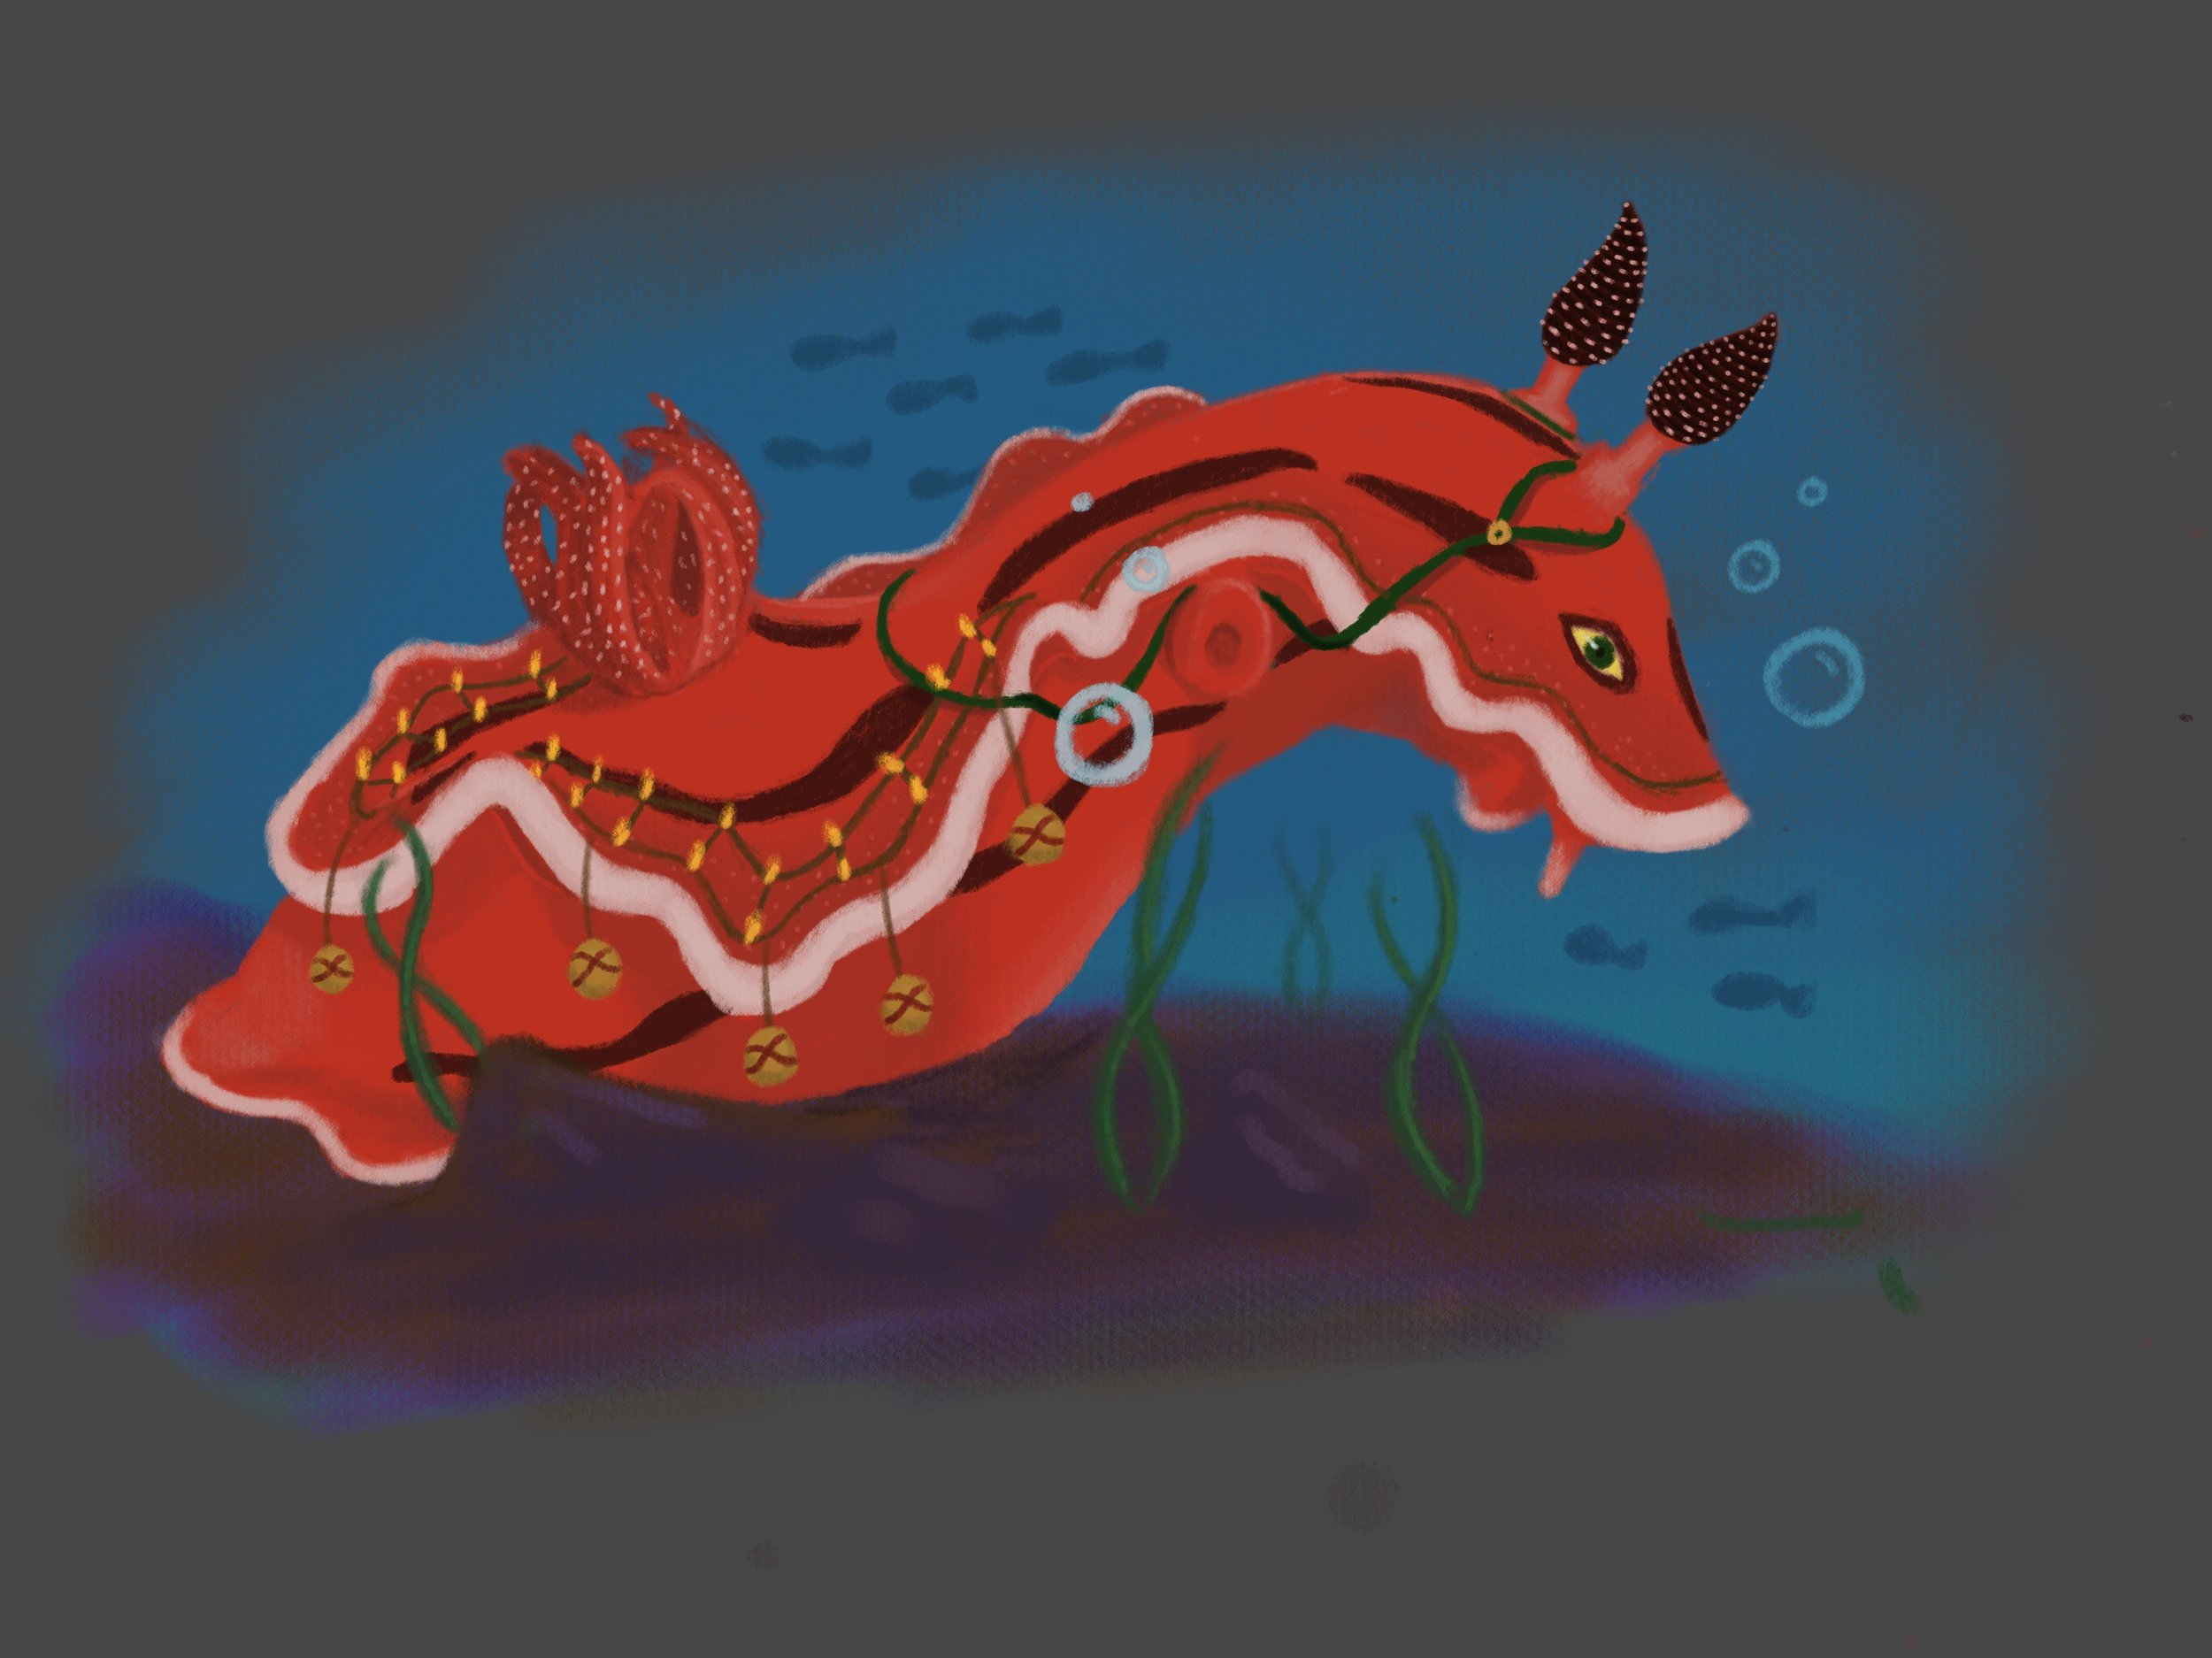 Rudolph as an undersea creature